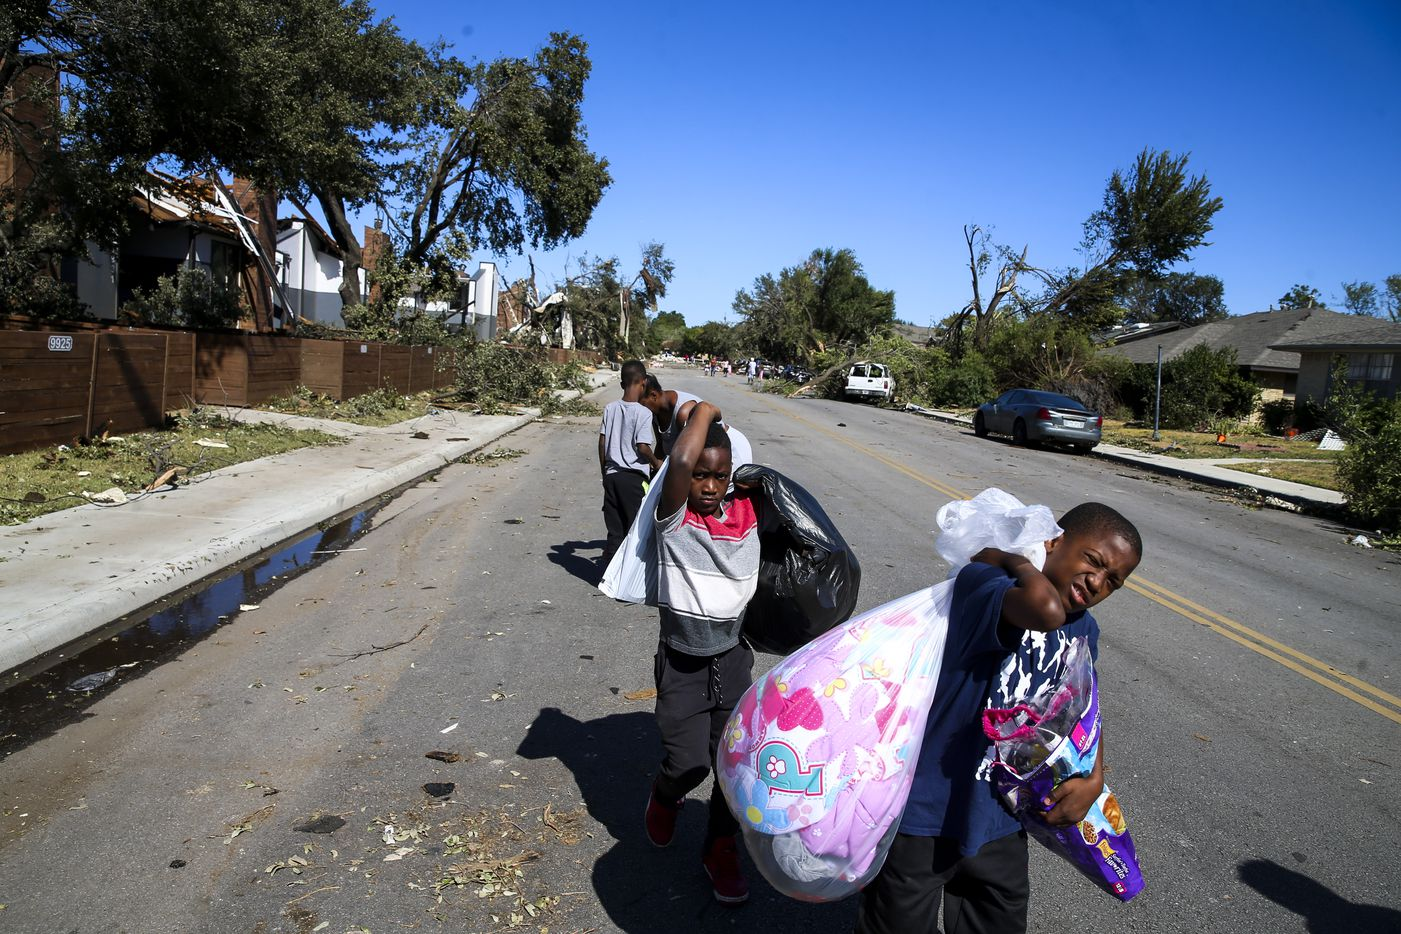 Ja'Marcus jones, 9, followed by Kalin Gassaway, 7, move their belonging to go stay with their aunt in the aftermath of the previous night's tornado, on Monday, October 21, 2019 at 9939 Brockbank Dr in Dallas.